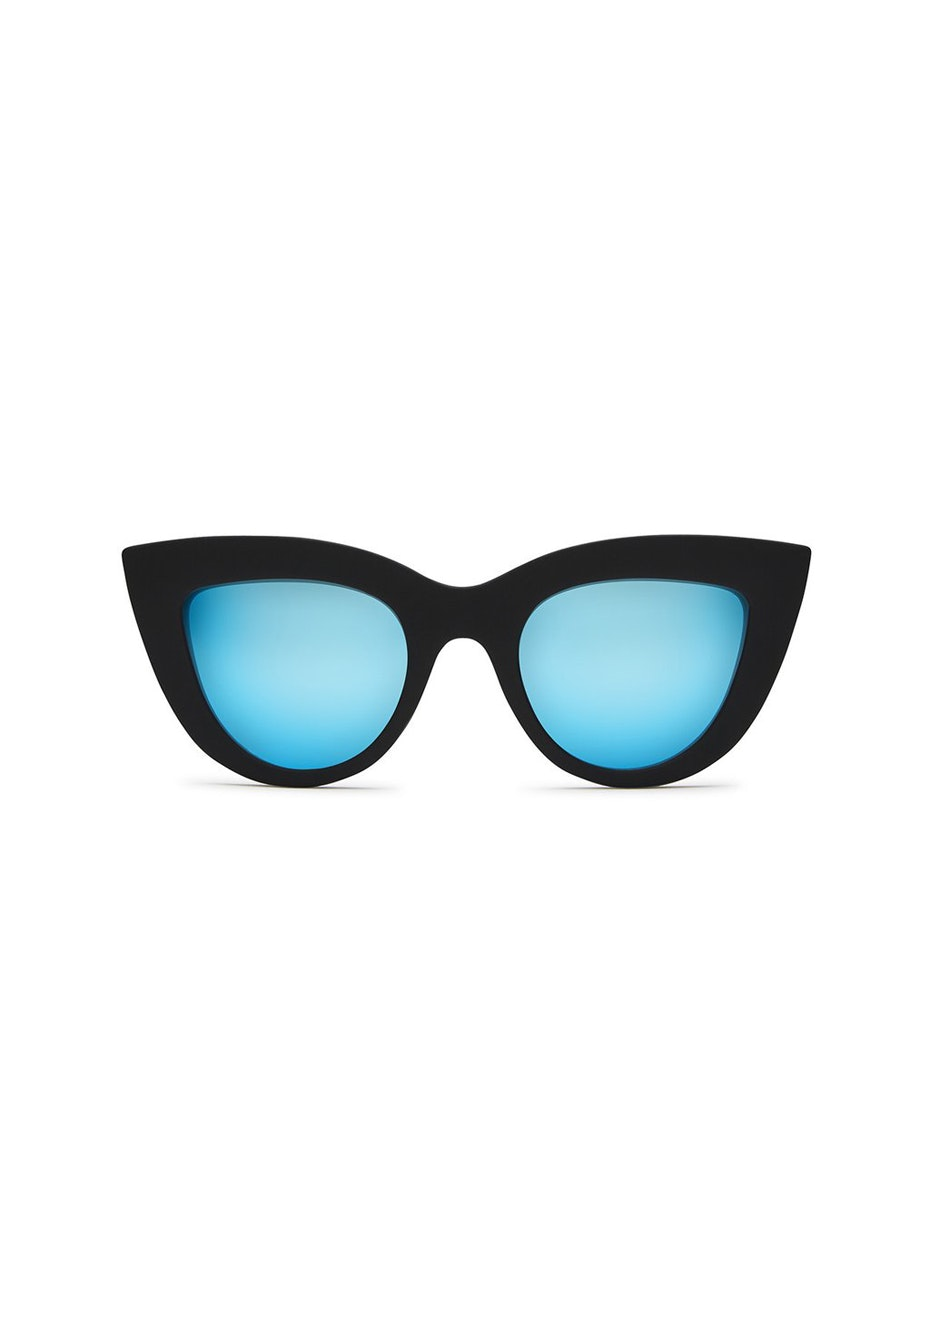 Quay - Kitti - Black / Blue Mirror